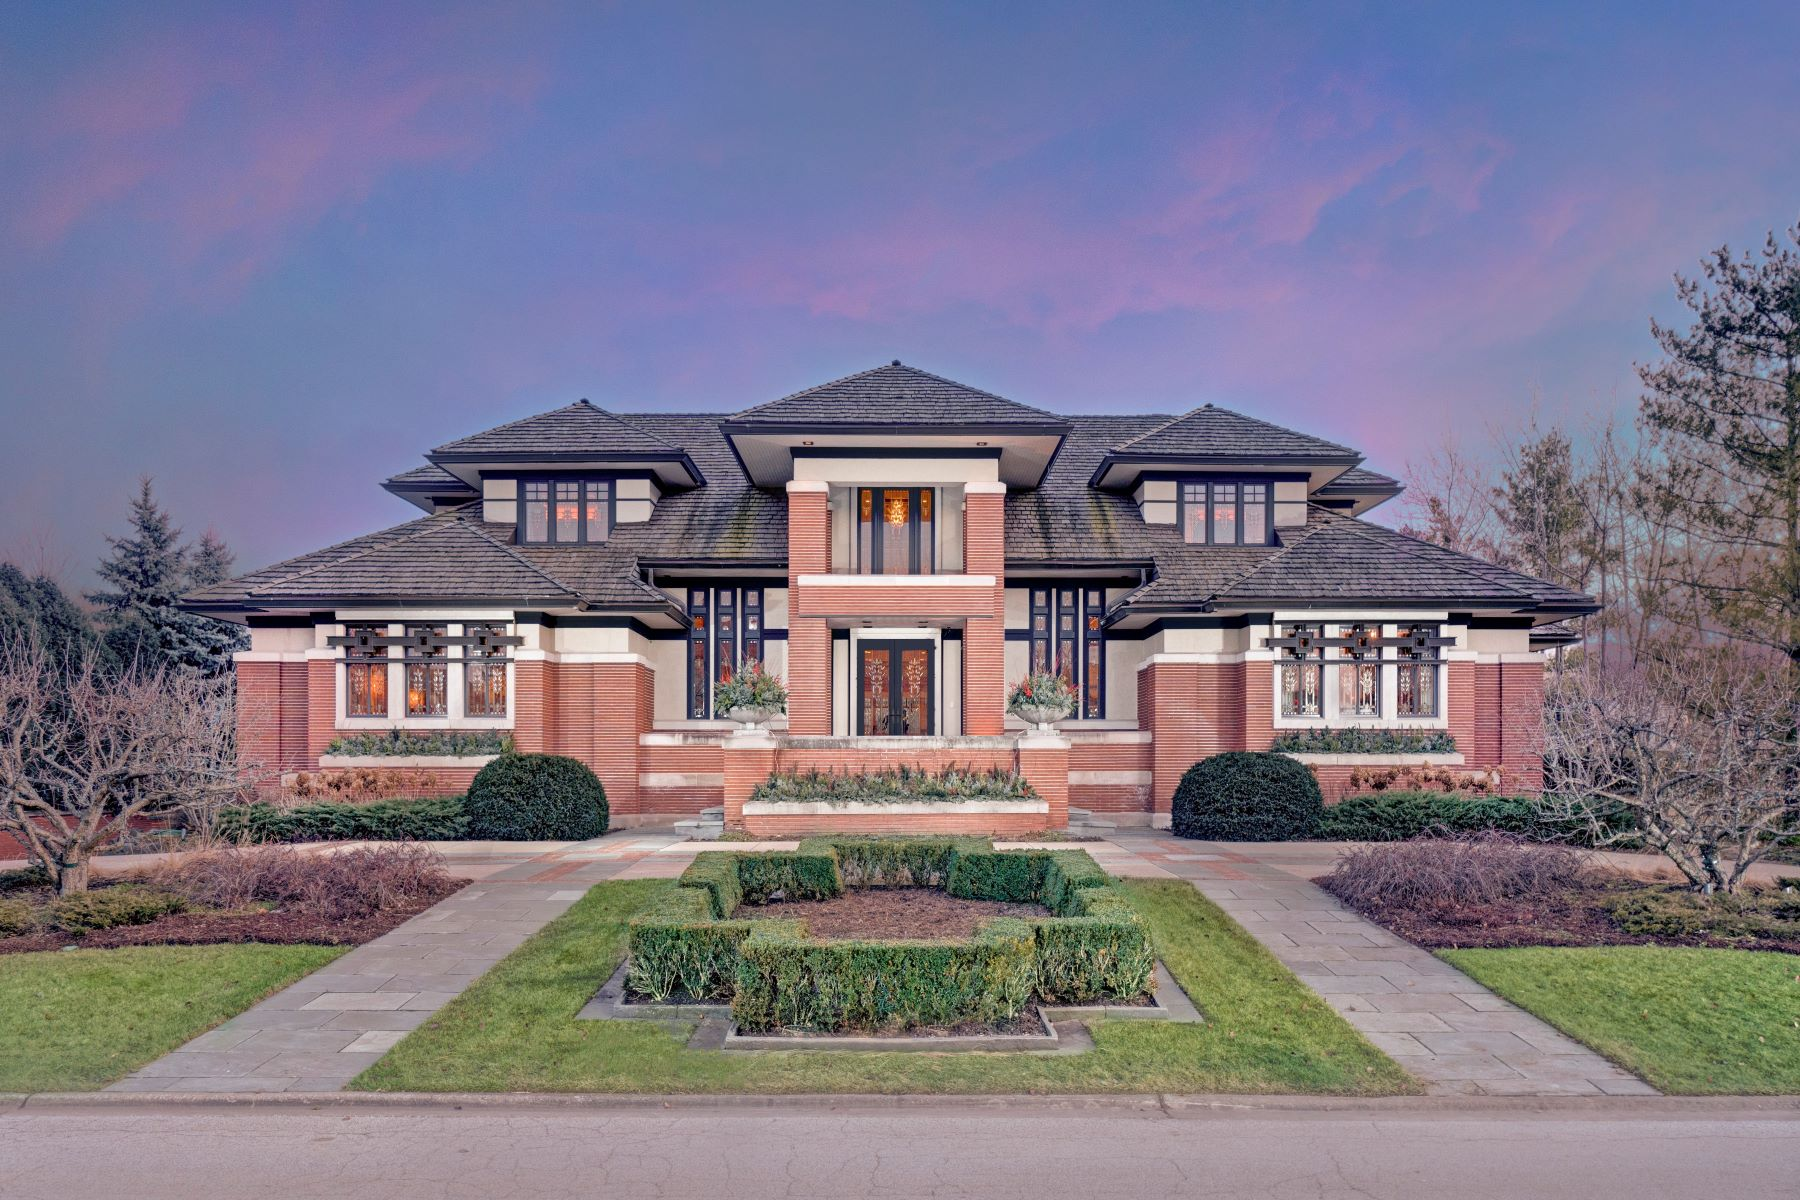 Single Family Homes для того Продажа на Spectacular Frank Lloyd Wright inspired Home 111 Singletree Road Orland Park, Иллинойс 60467 Соединенные Штаты